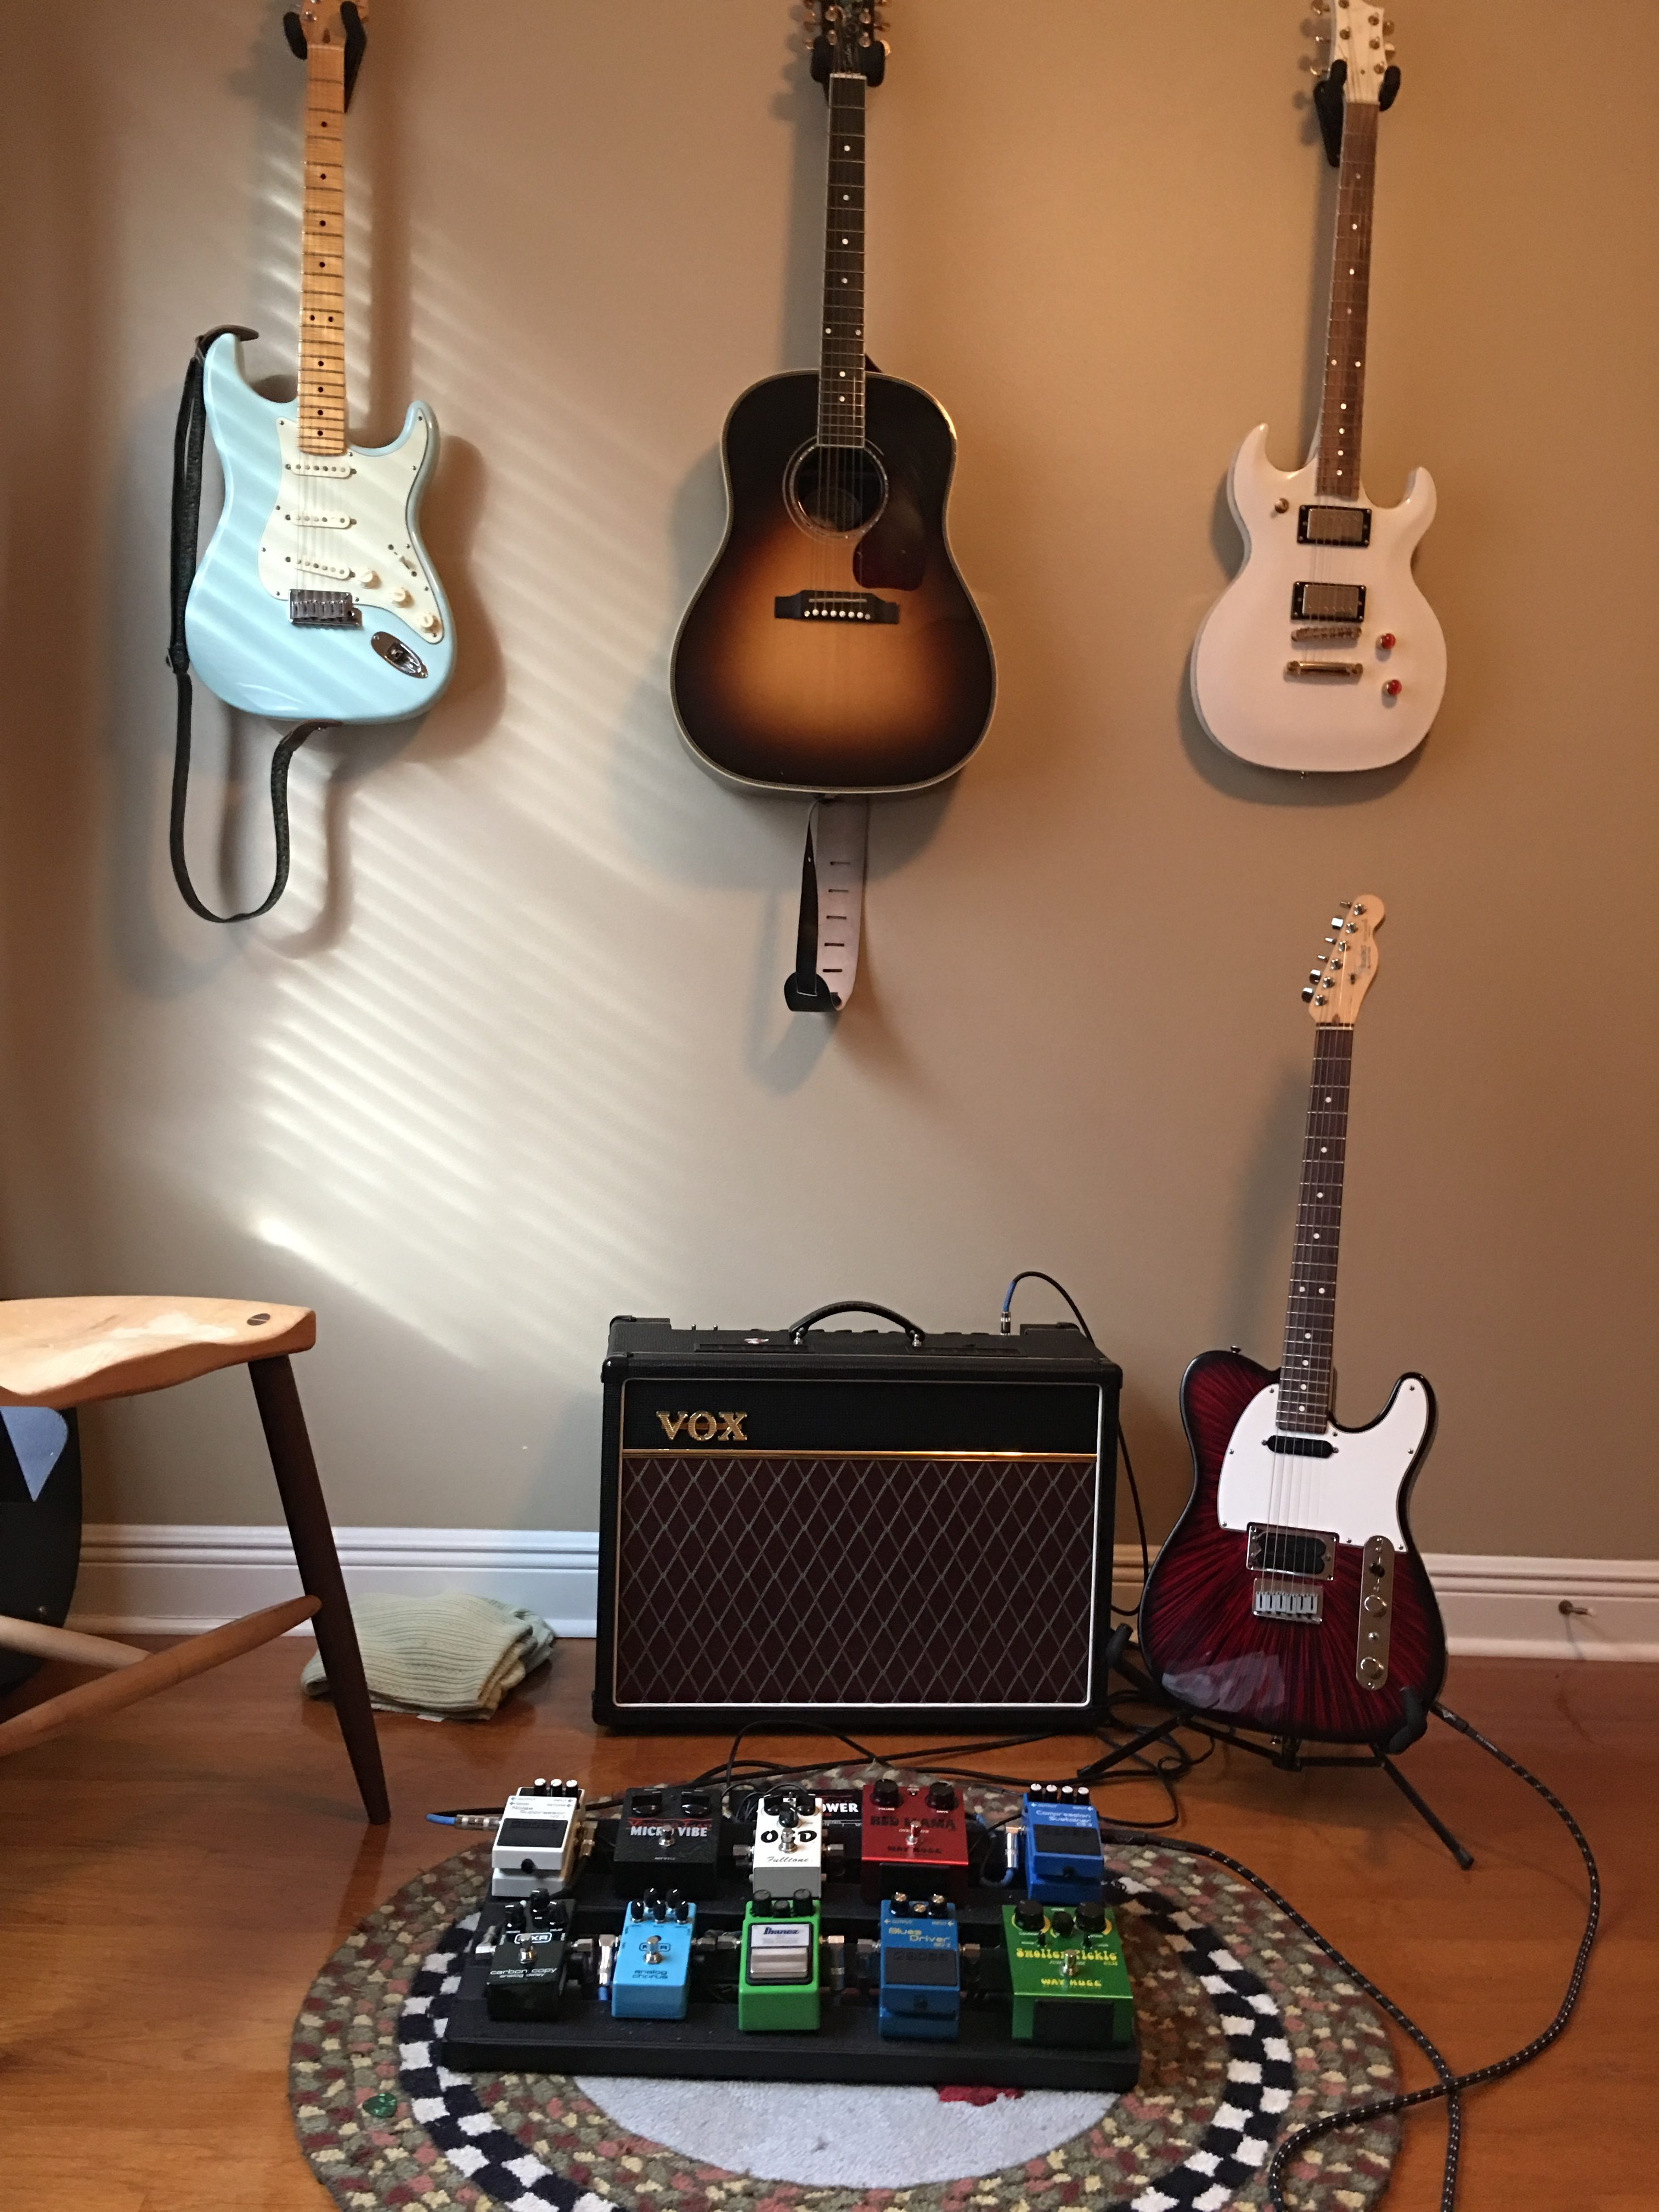 Andrew's guitar rig with pedal board